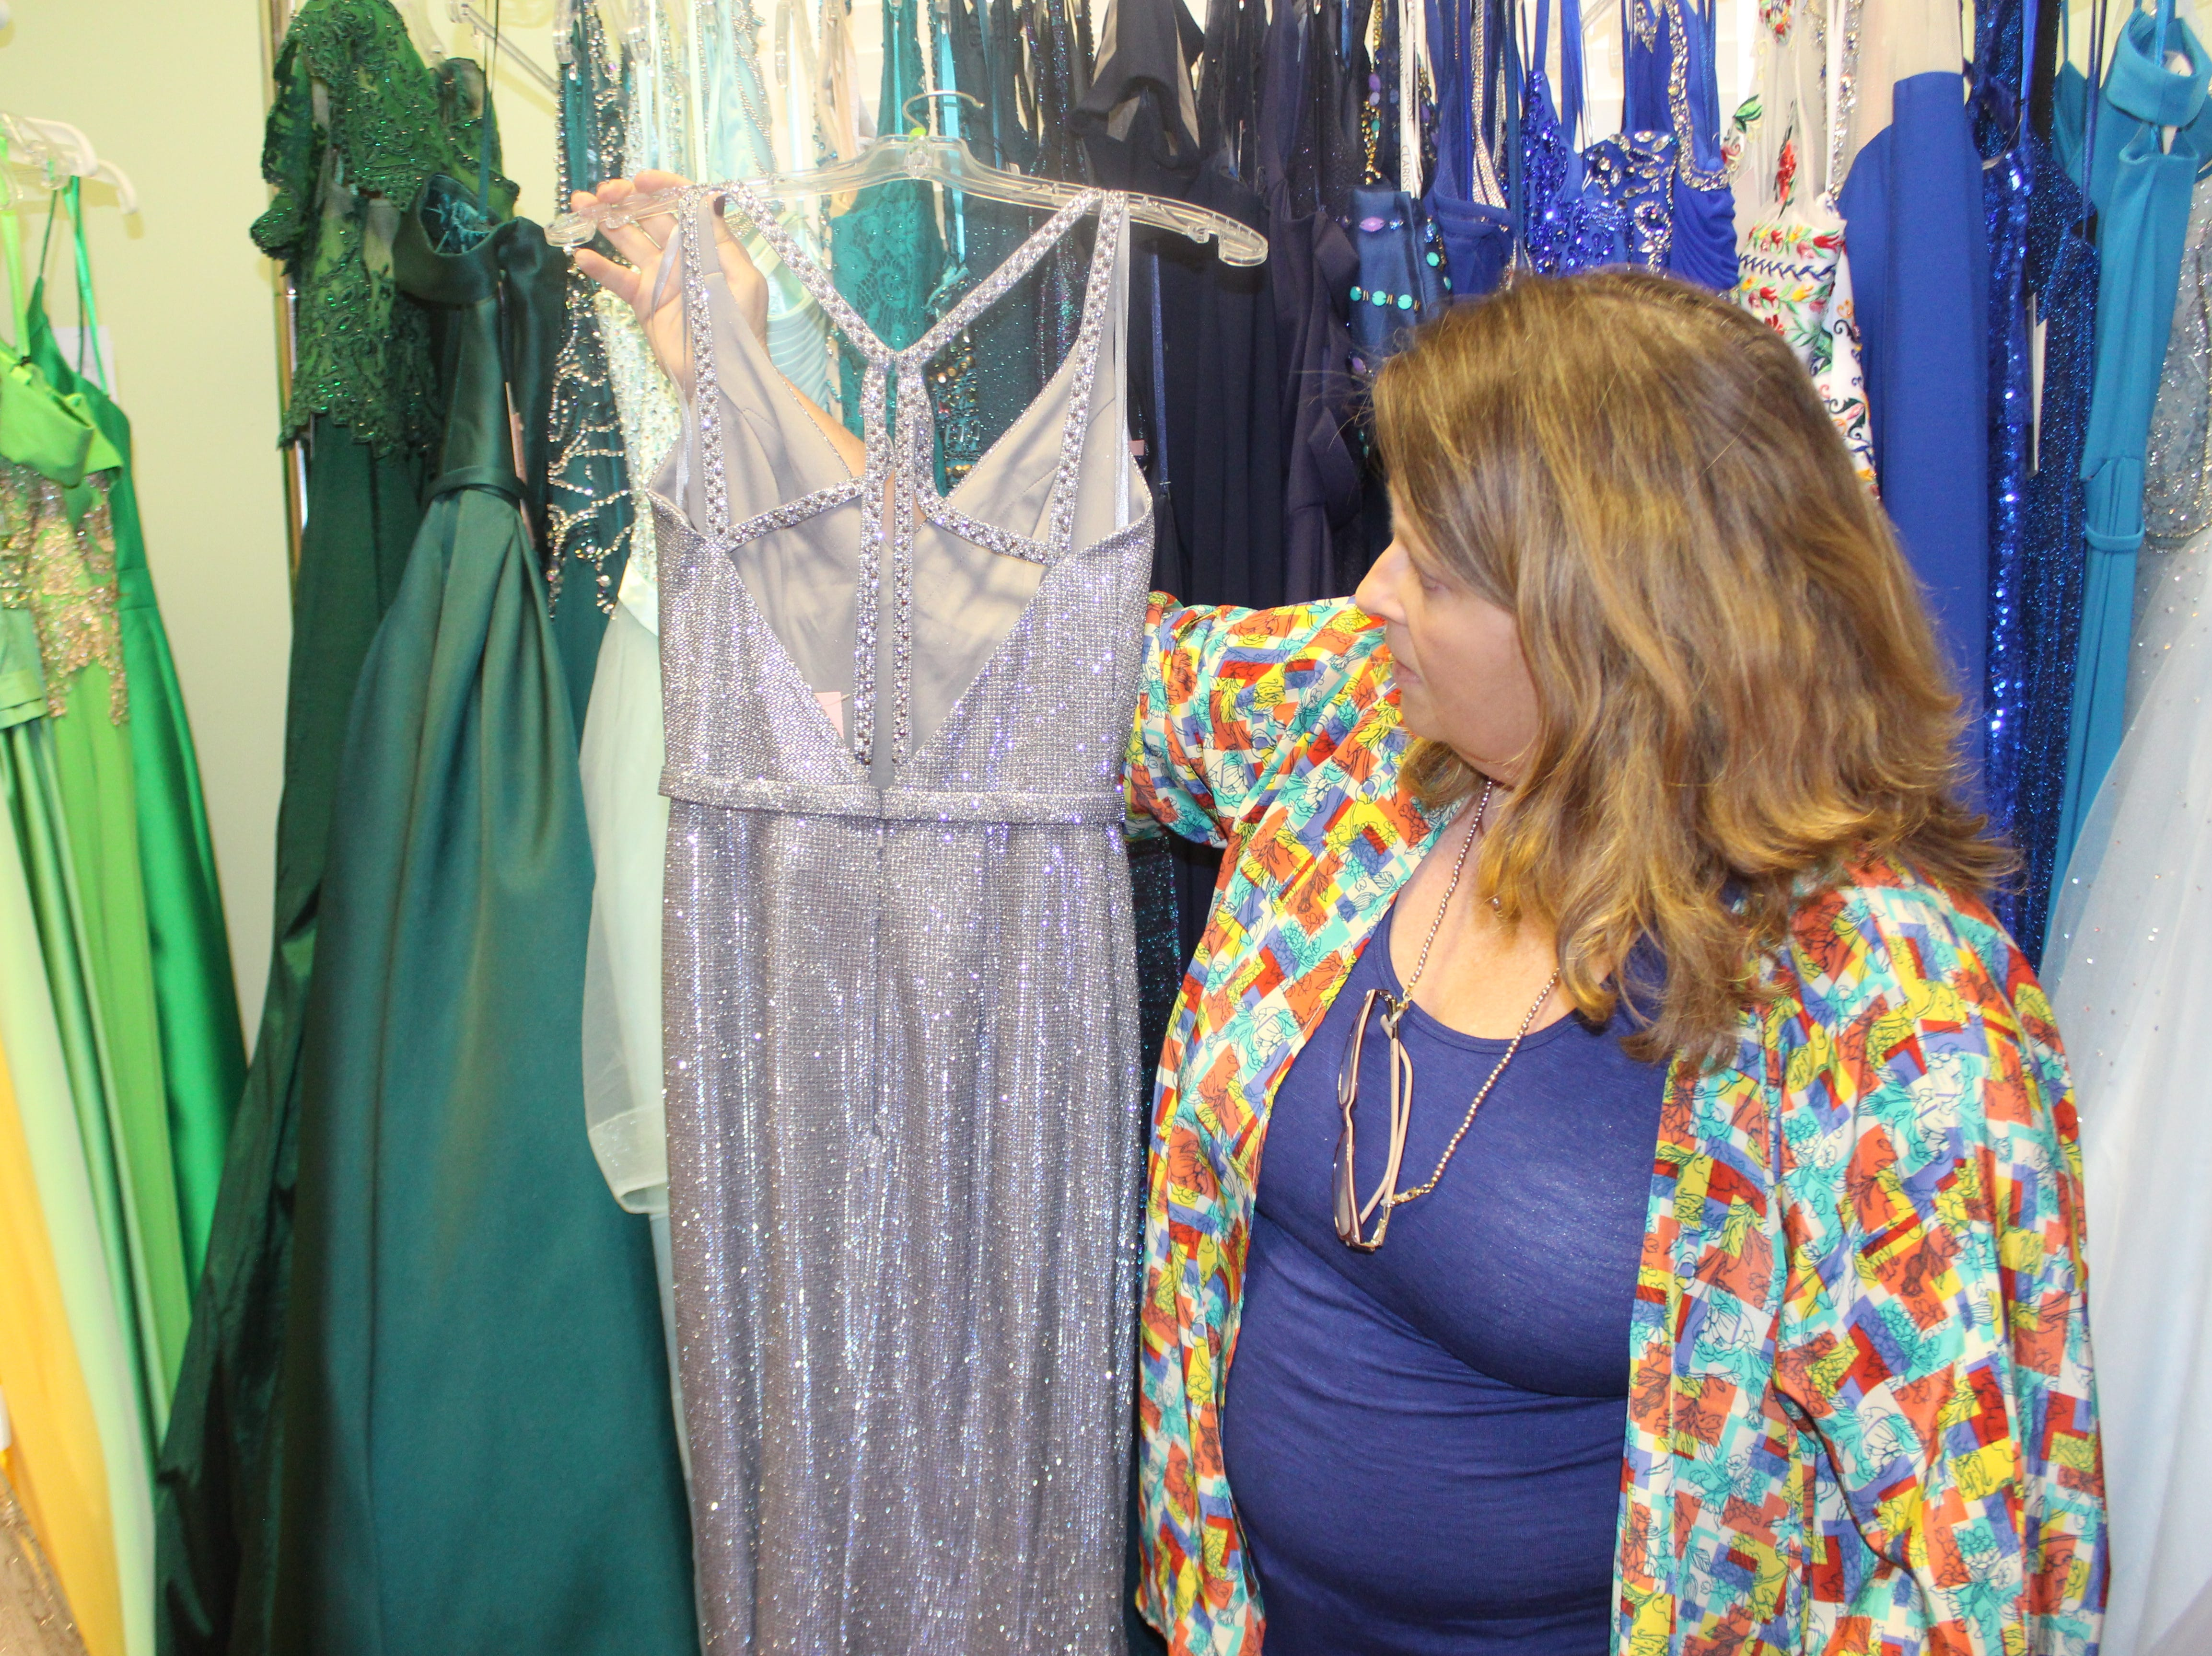 Wedding Belles owner Lisa Forest shows off one prom gown trend, a metallic jersey gown featuring a strappy back.